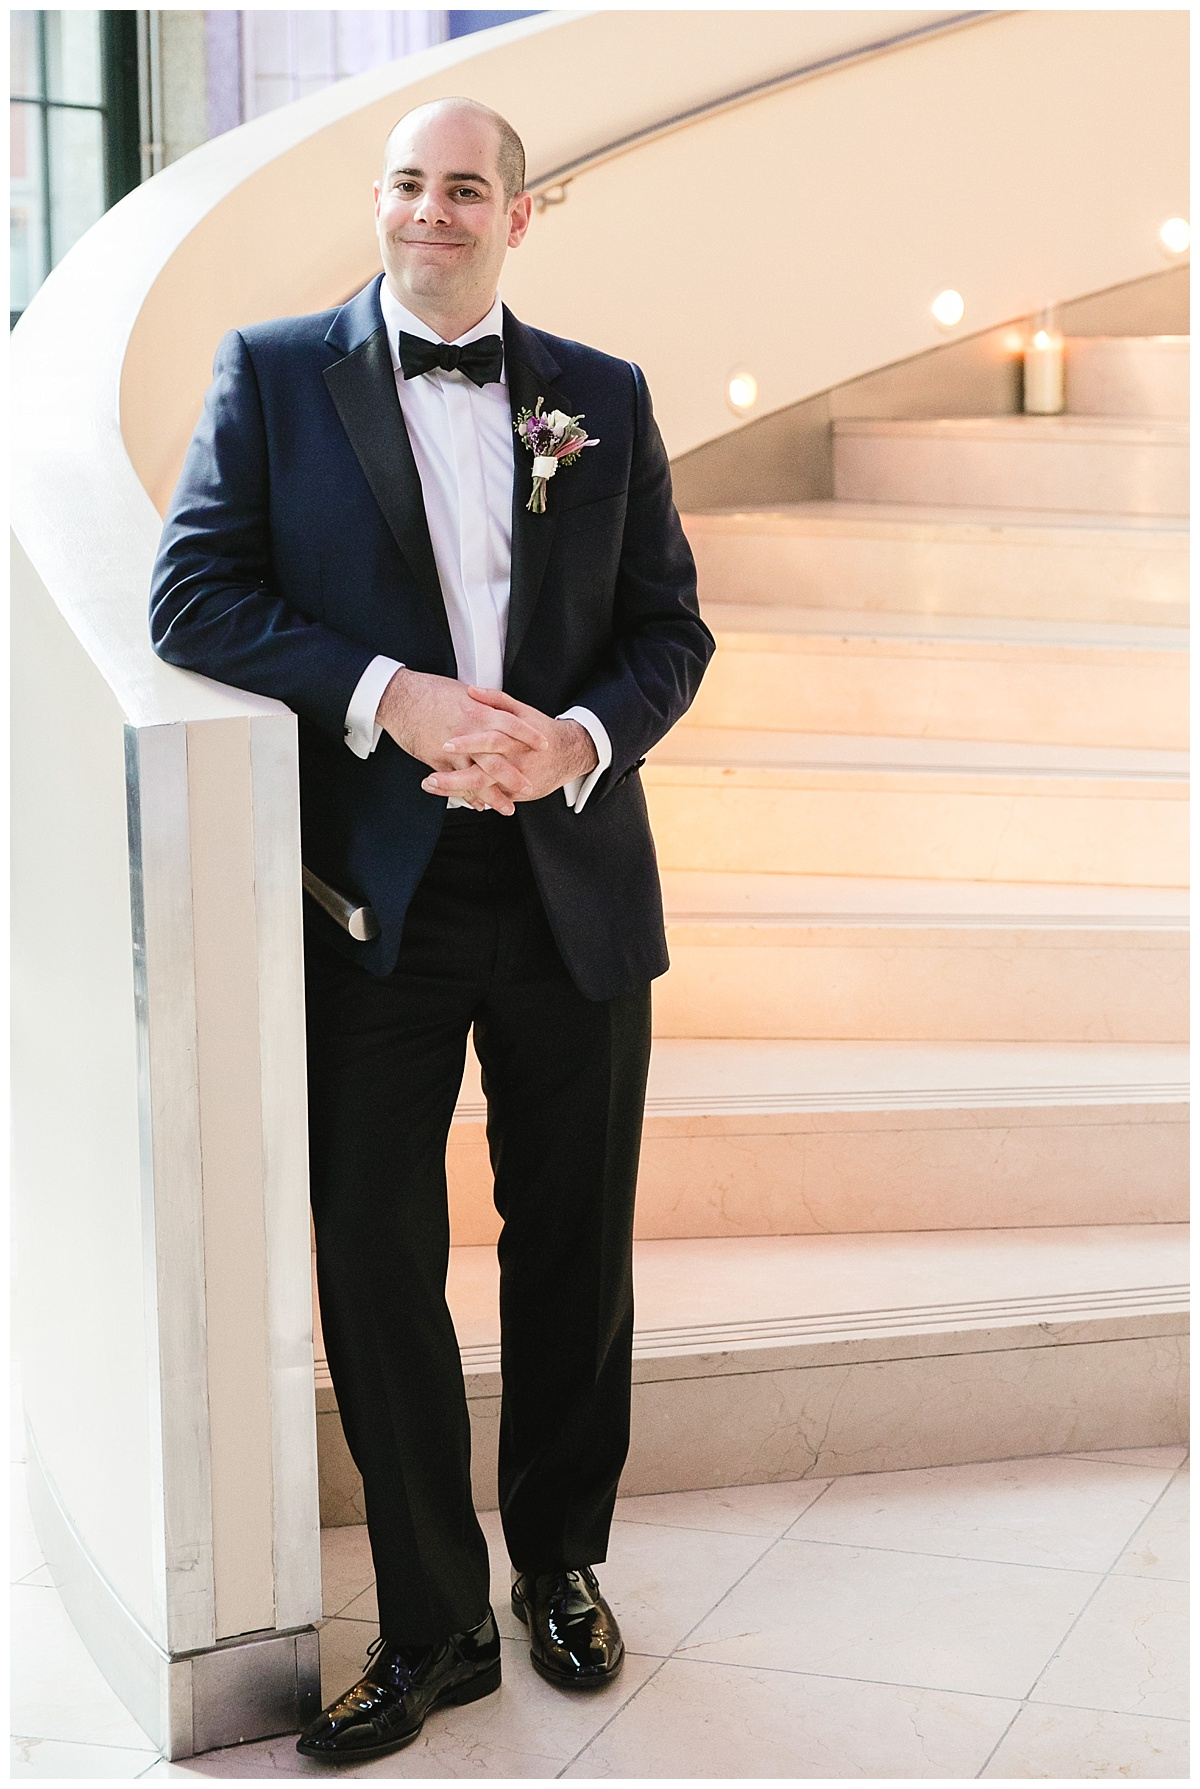 A portrait of a groom on a wedding day at Guastavinos in New York City.